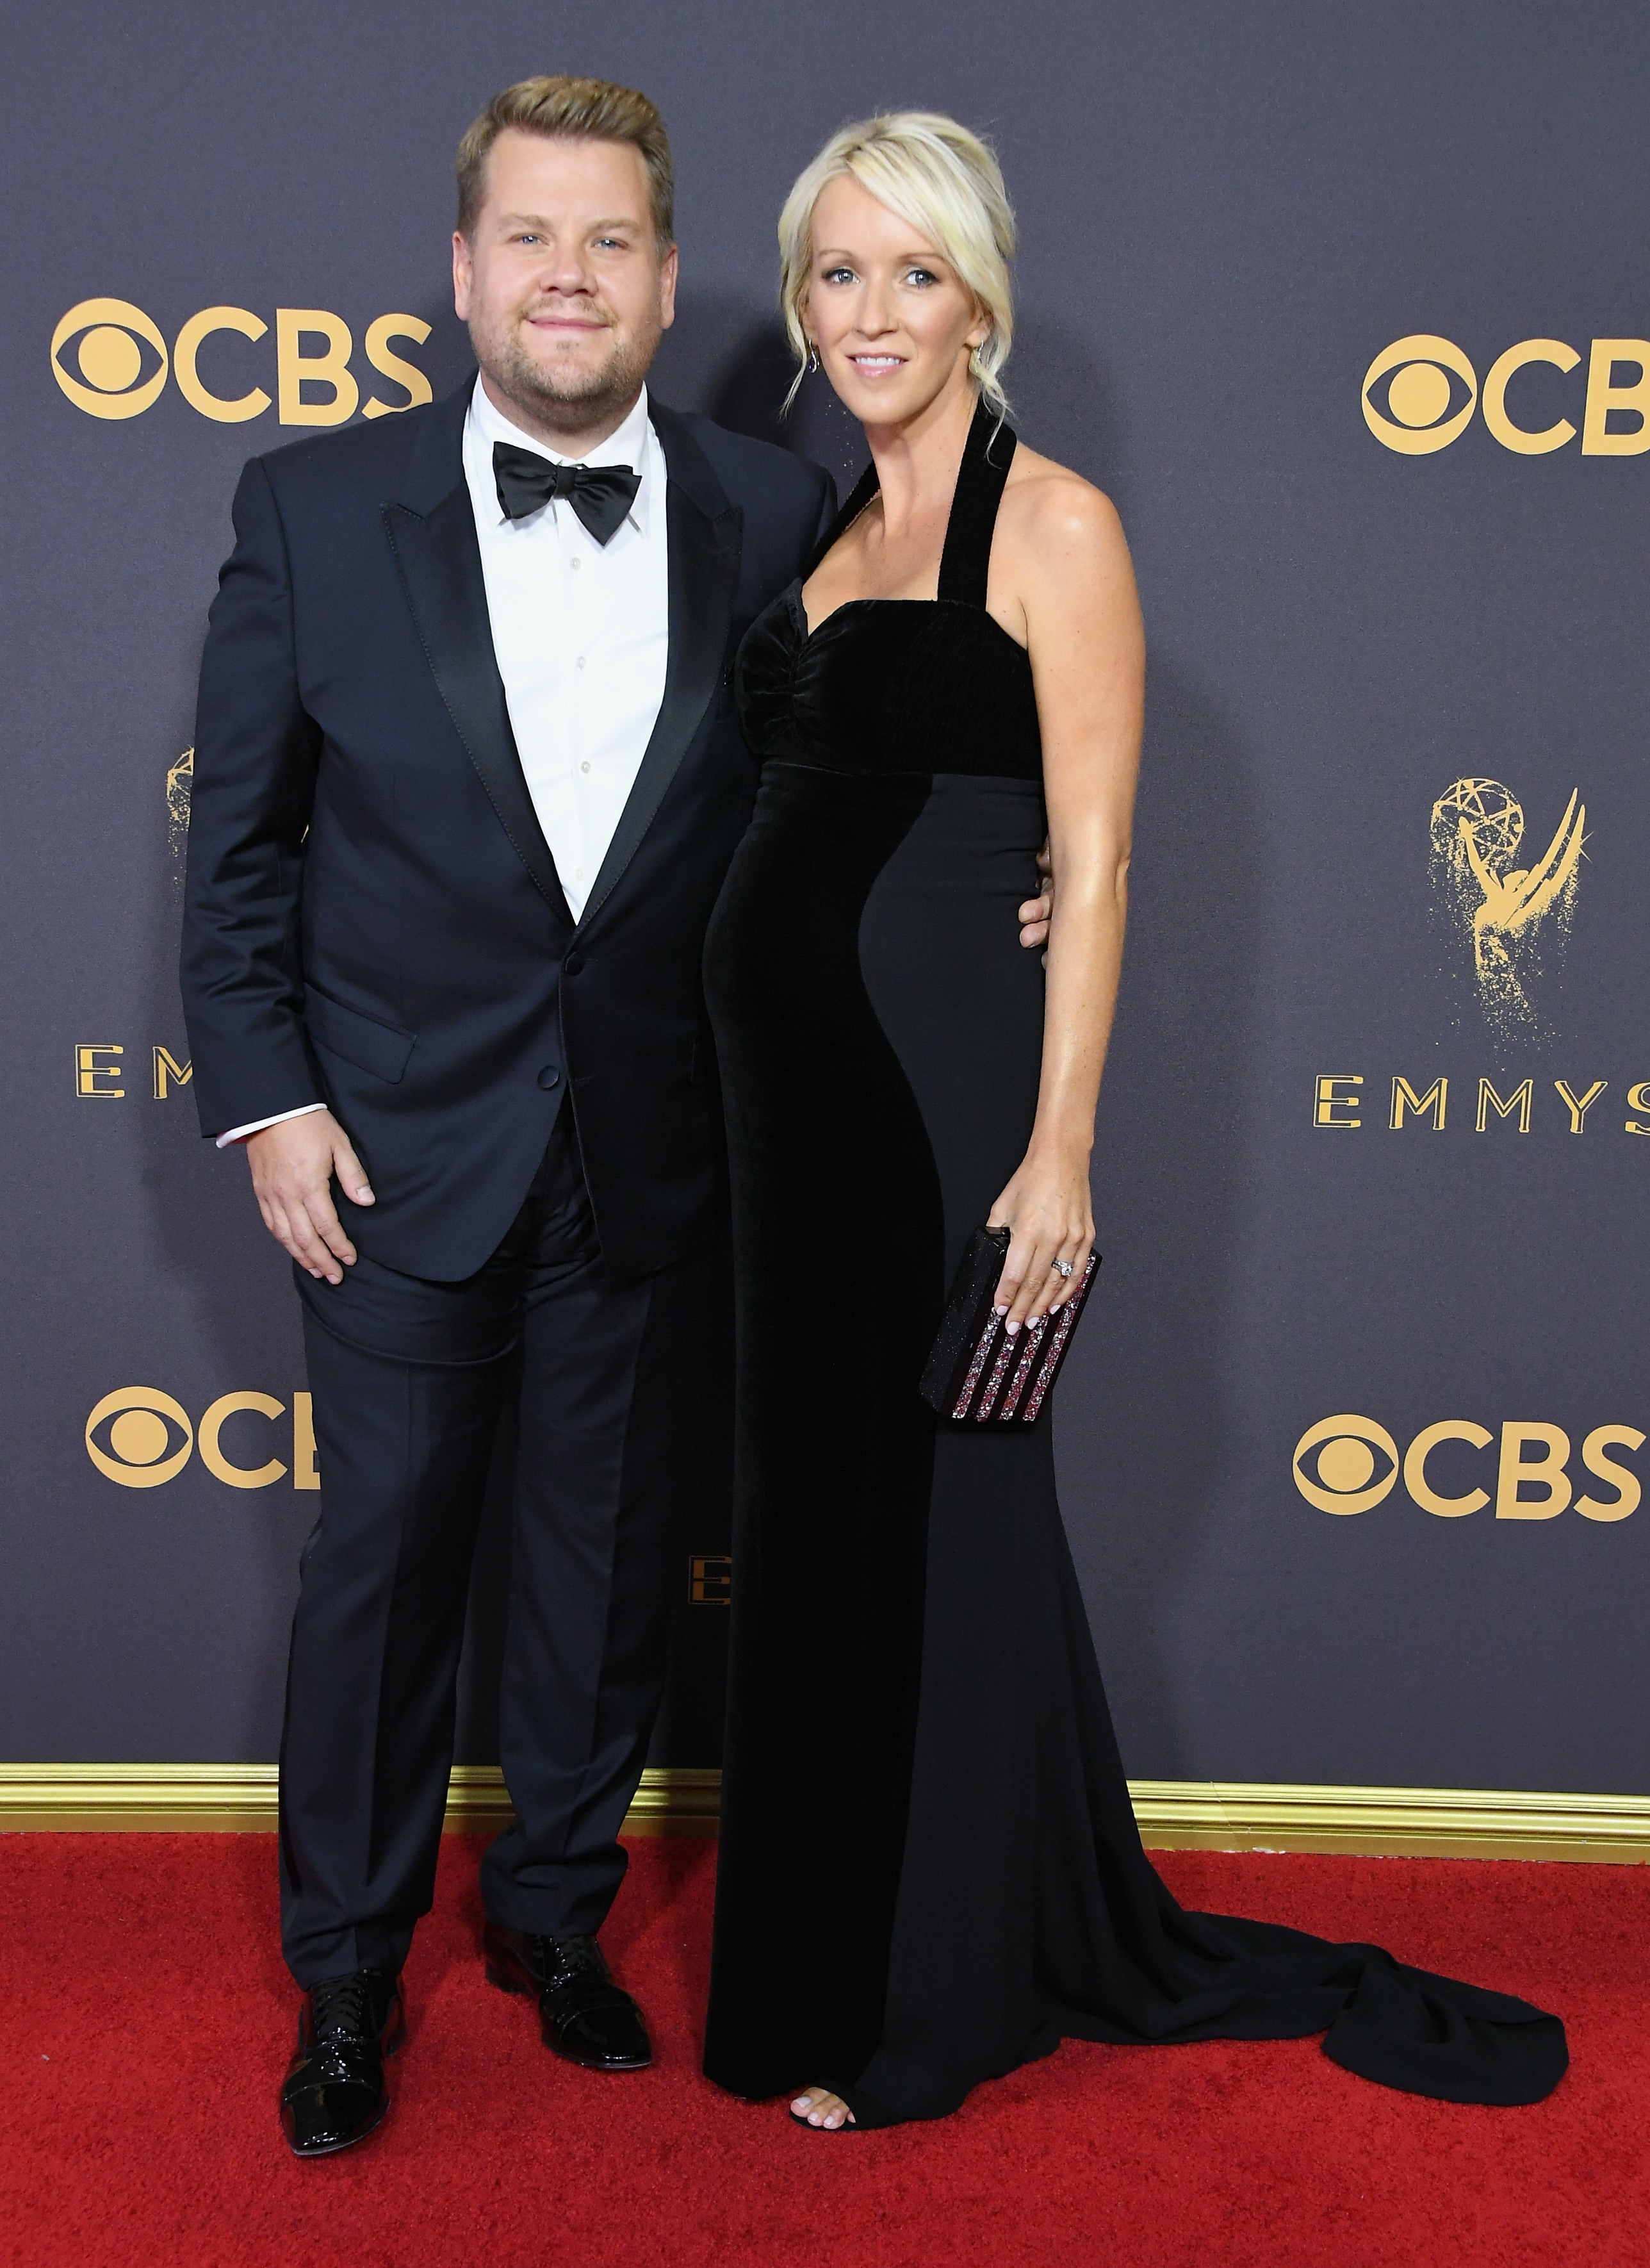 TV personality James Corden (L) and Julia Carey attend the 69th Annual Primetime Emmy Awards at Microsoft Theater on September 17, 2017 in Los Angeles, California.